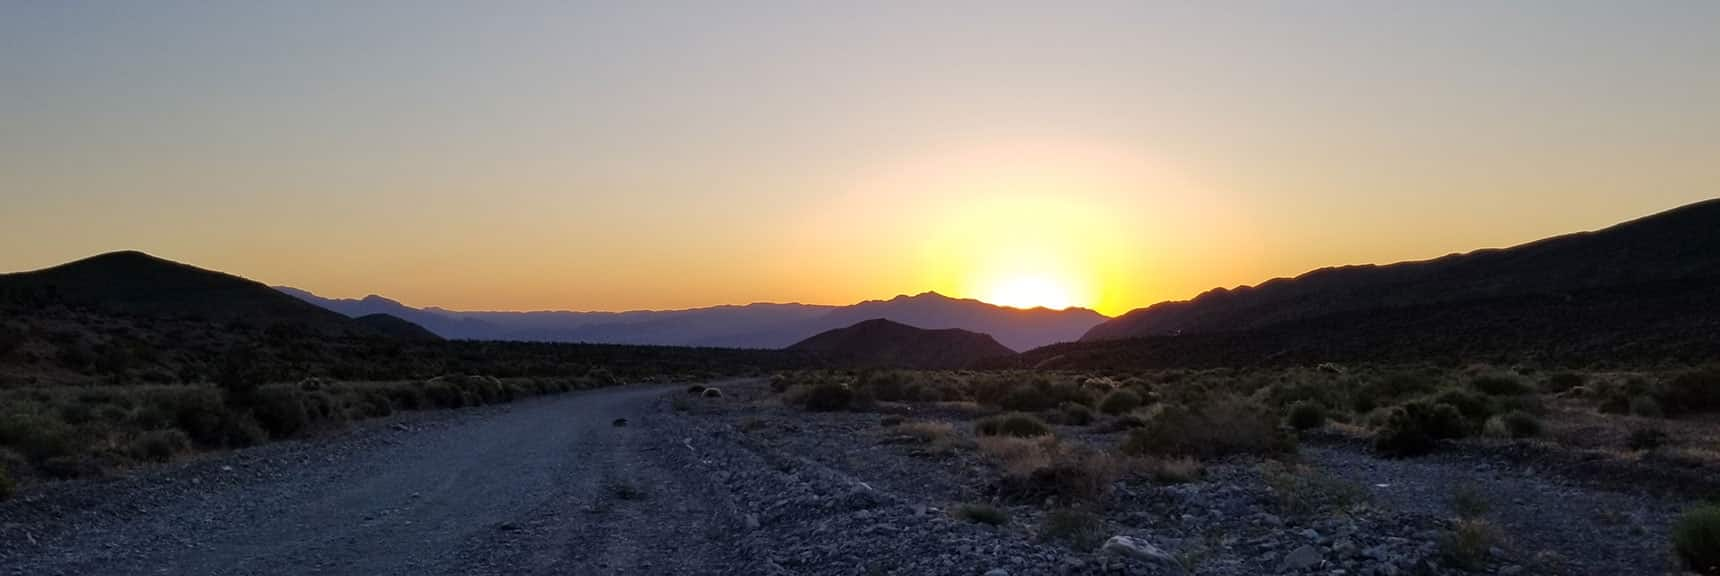 Looking Back Down Harris Springs Road to the Rising Sun Over Gass Peak | La Madre Mountain Northern Approach, Nevada